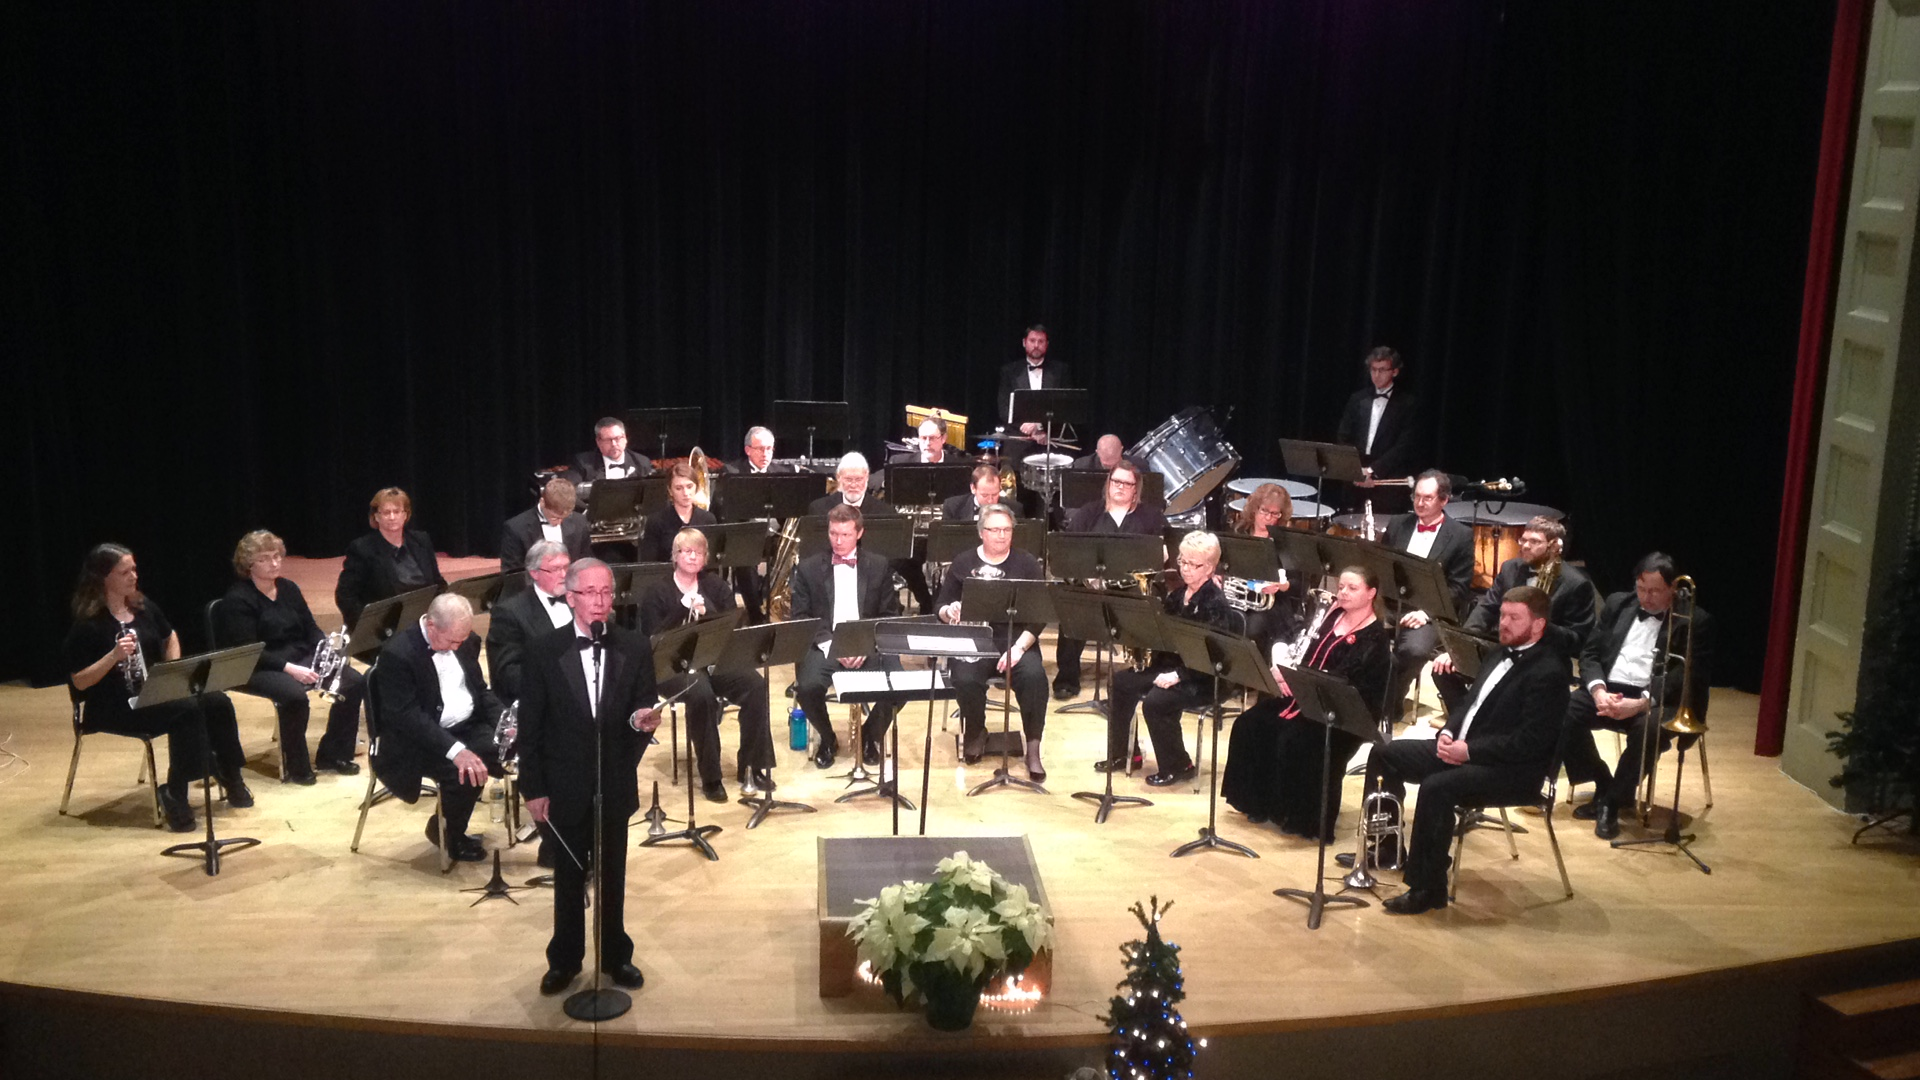 Caption: The Winona Brass Band, Credit: KQAL